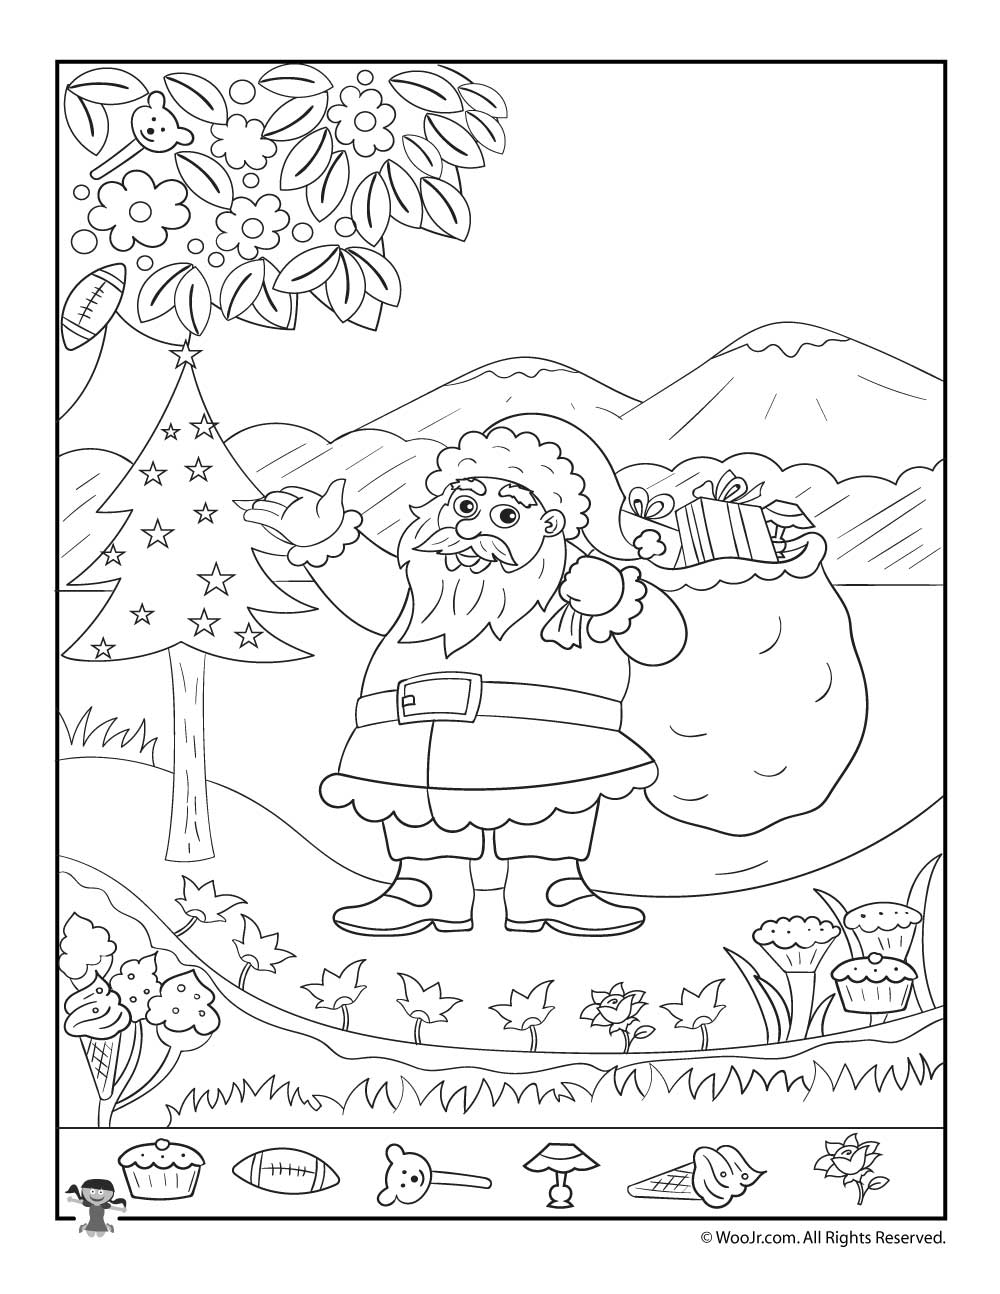 Christmas Coloring Hidden Pictures With Printables For Kids Woo Jr Activities